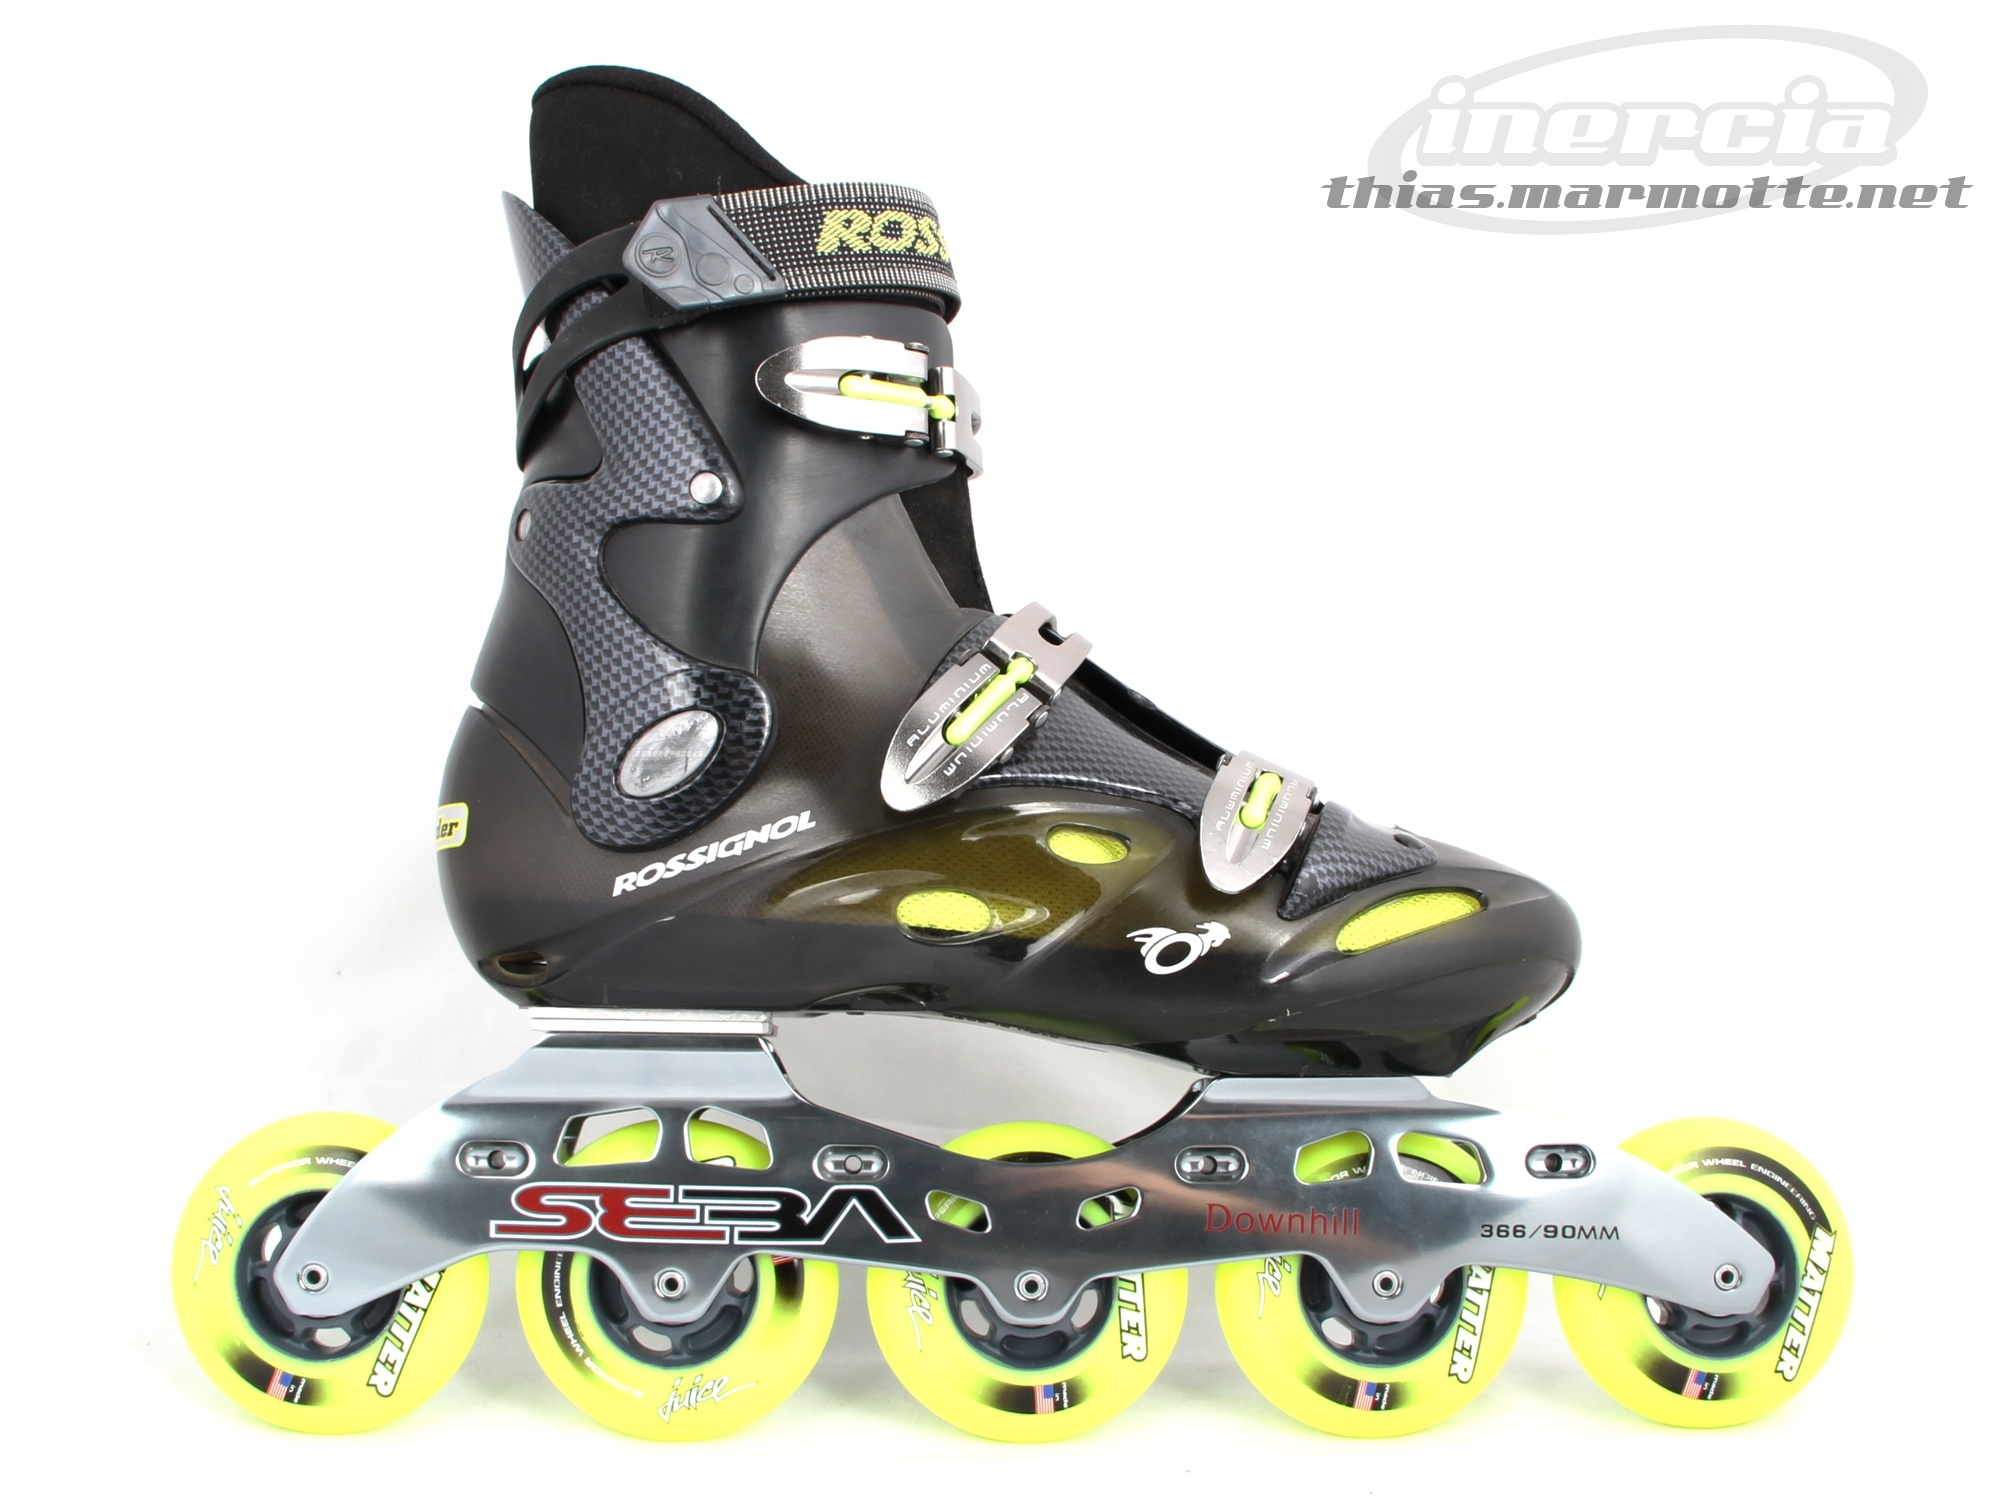 Rossignol Descender Downhill